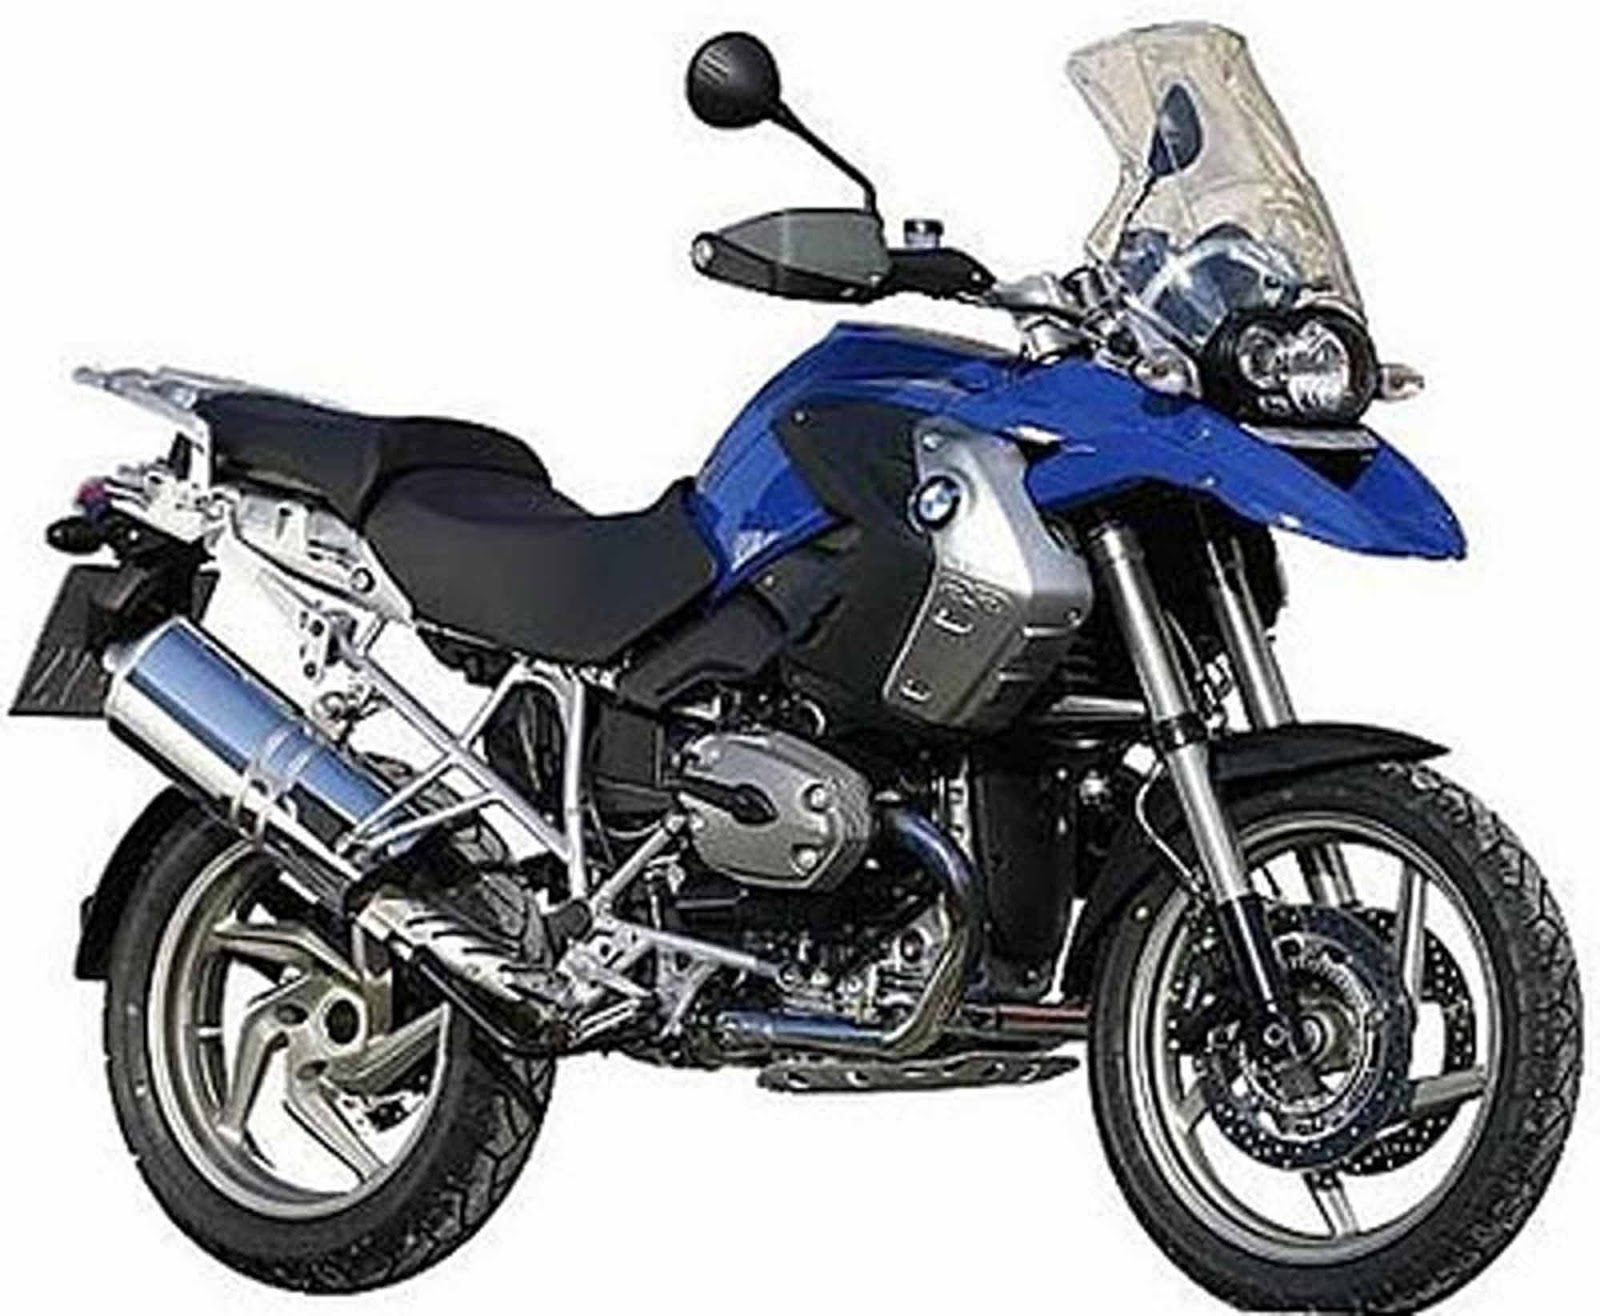 2013 Bmw R1250gs Motor Bike Motor Bikes